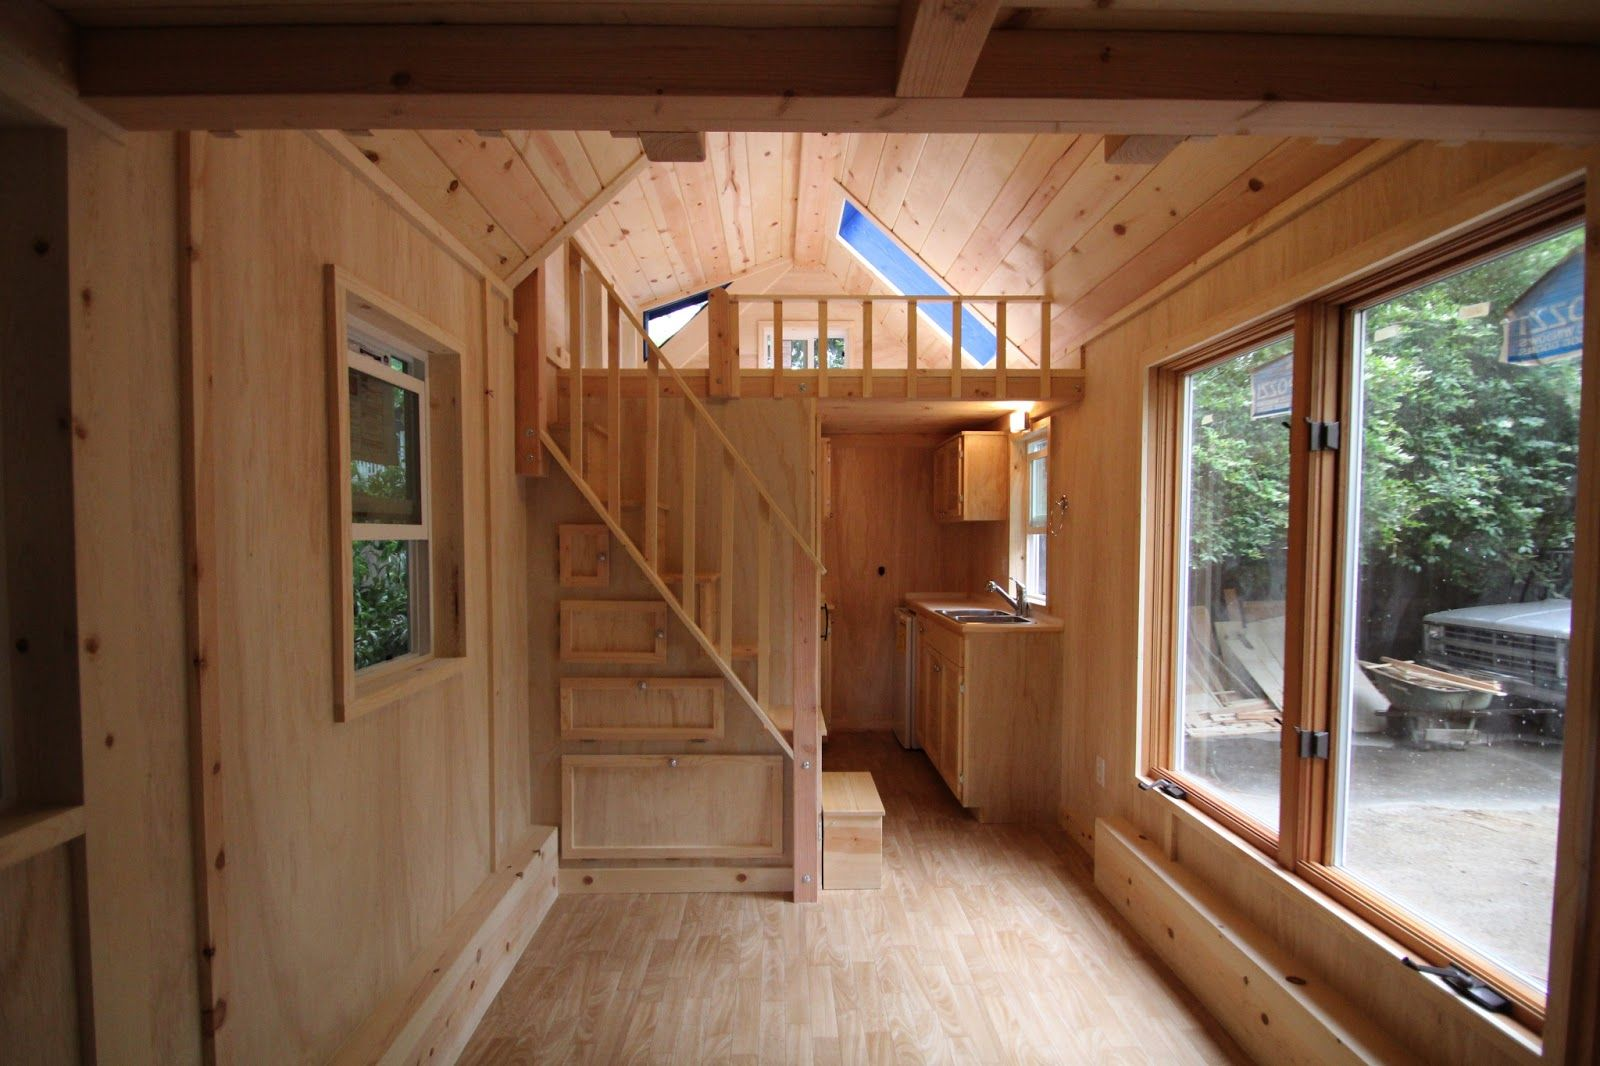 Admirable 17 Best Images About Tiny Houses I Want On Pinterest Tiny House Largest Home Design Picture Inspirations Pitcheantrous